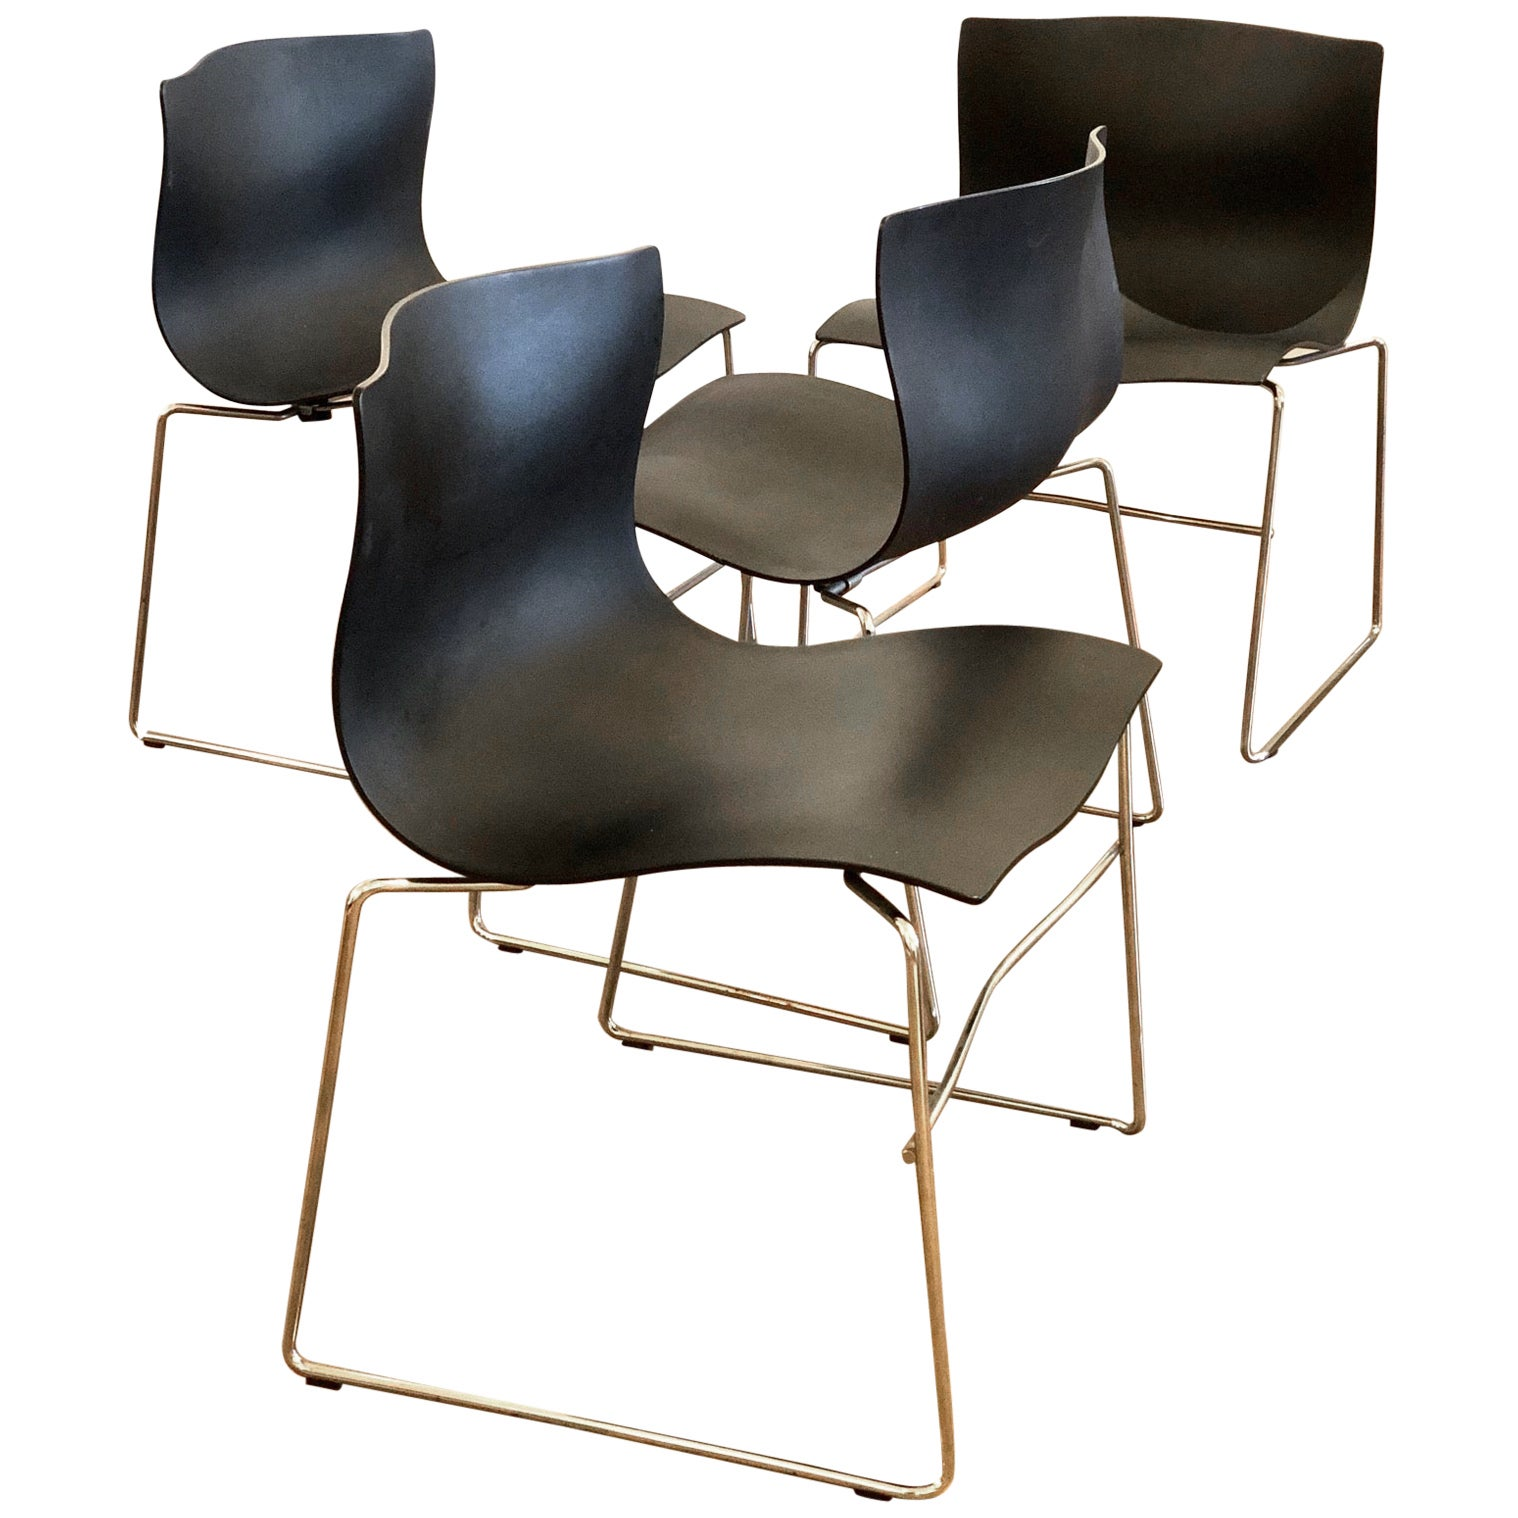 Set of 4 Handkerchief Chairs in Black & Chrome Designed by Vignelli for Knoll